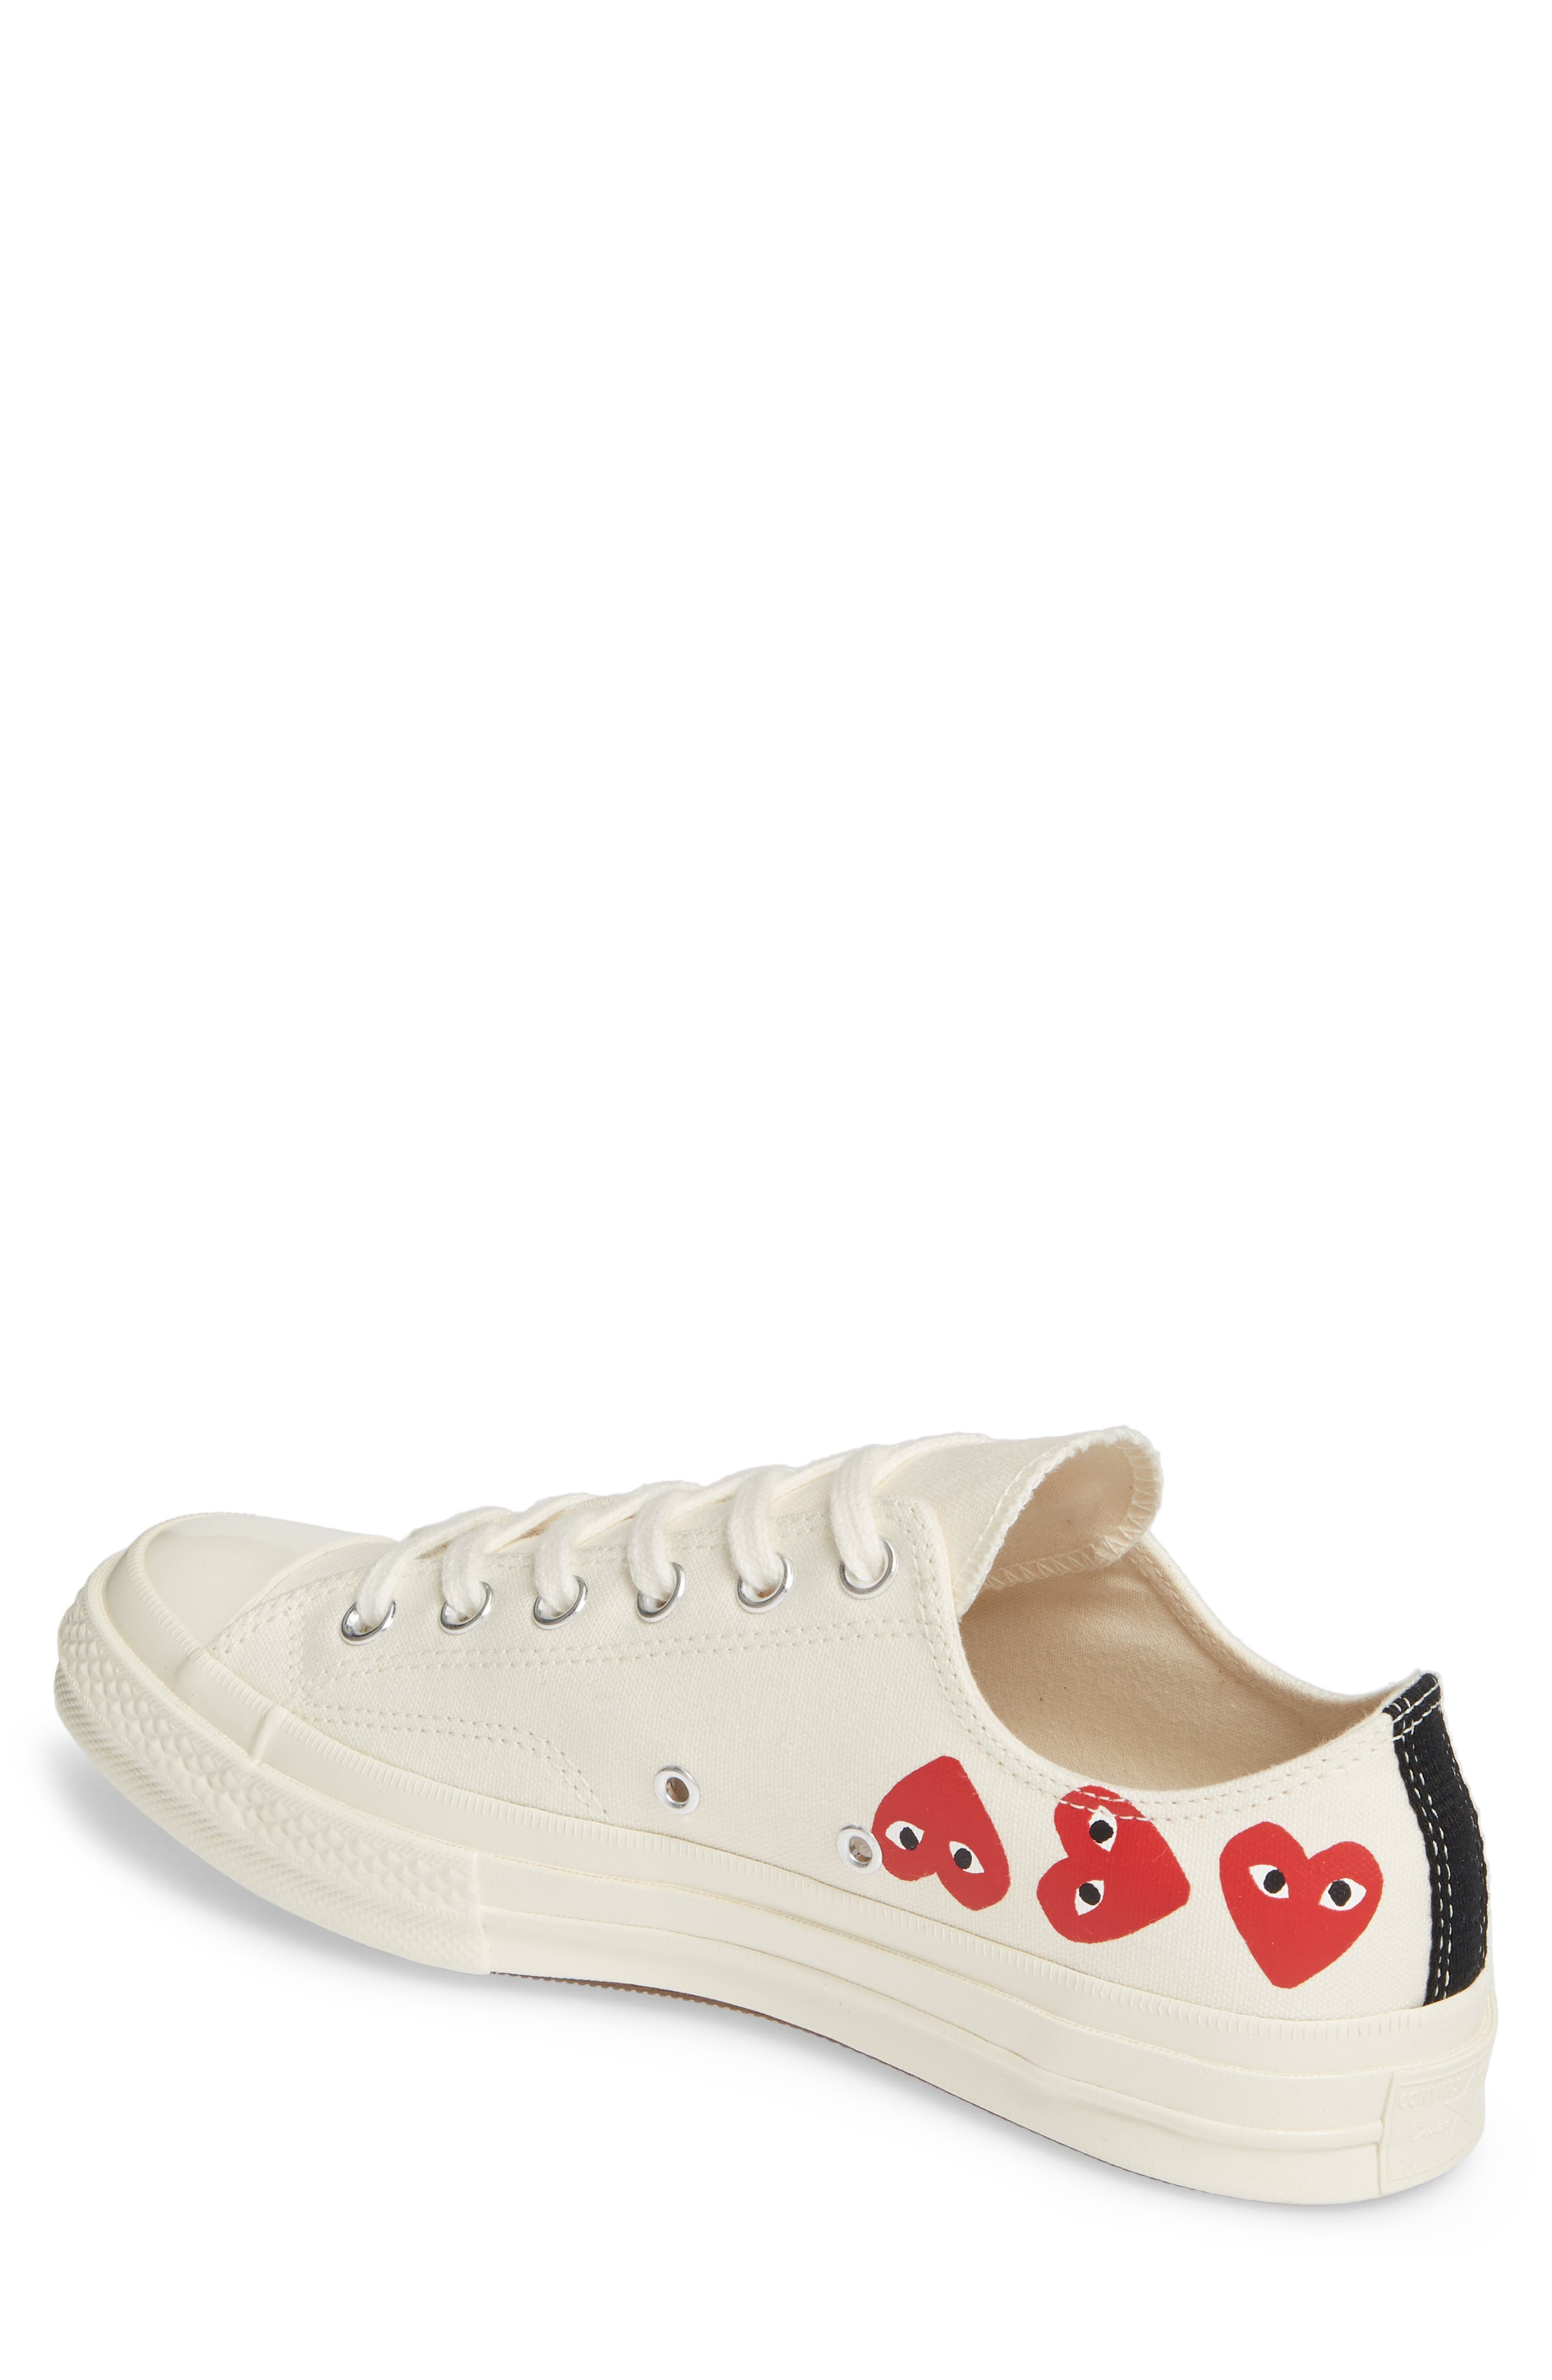 21344cced2c converse cdg | Nordstrom